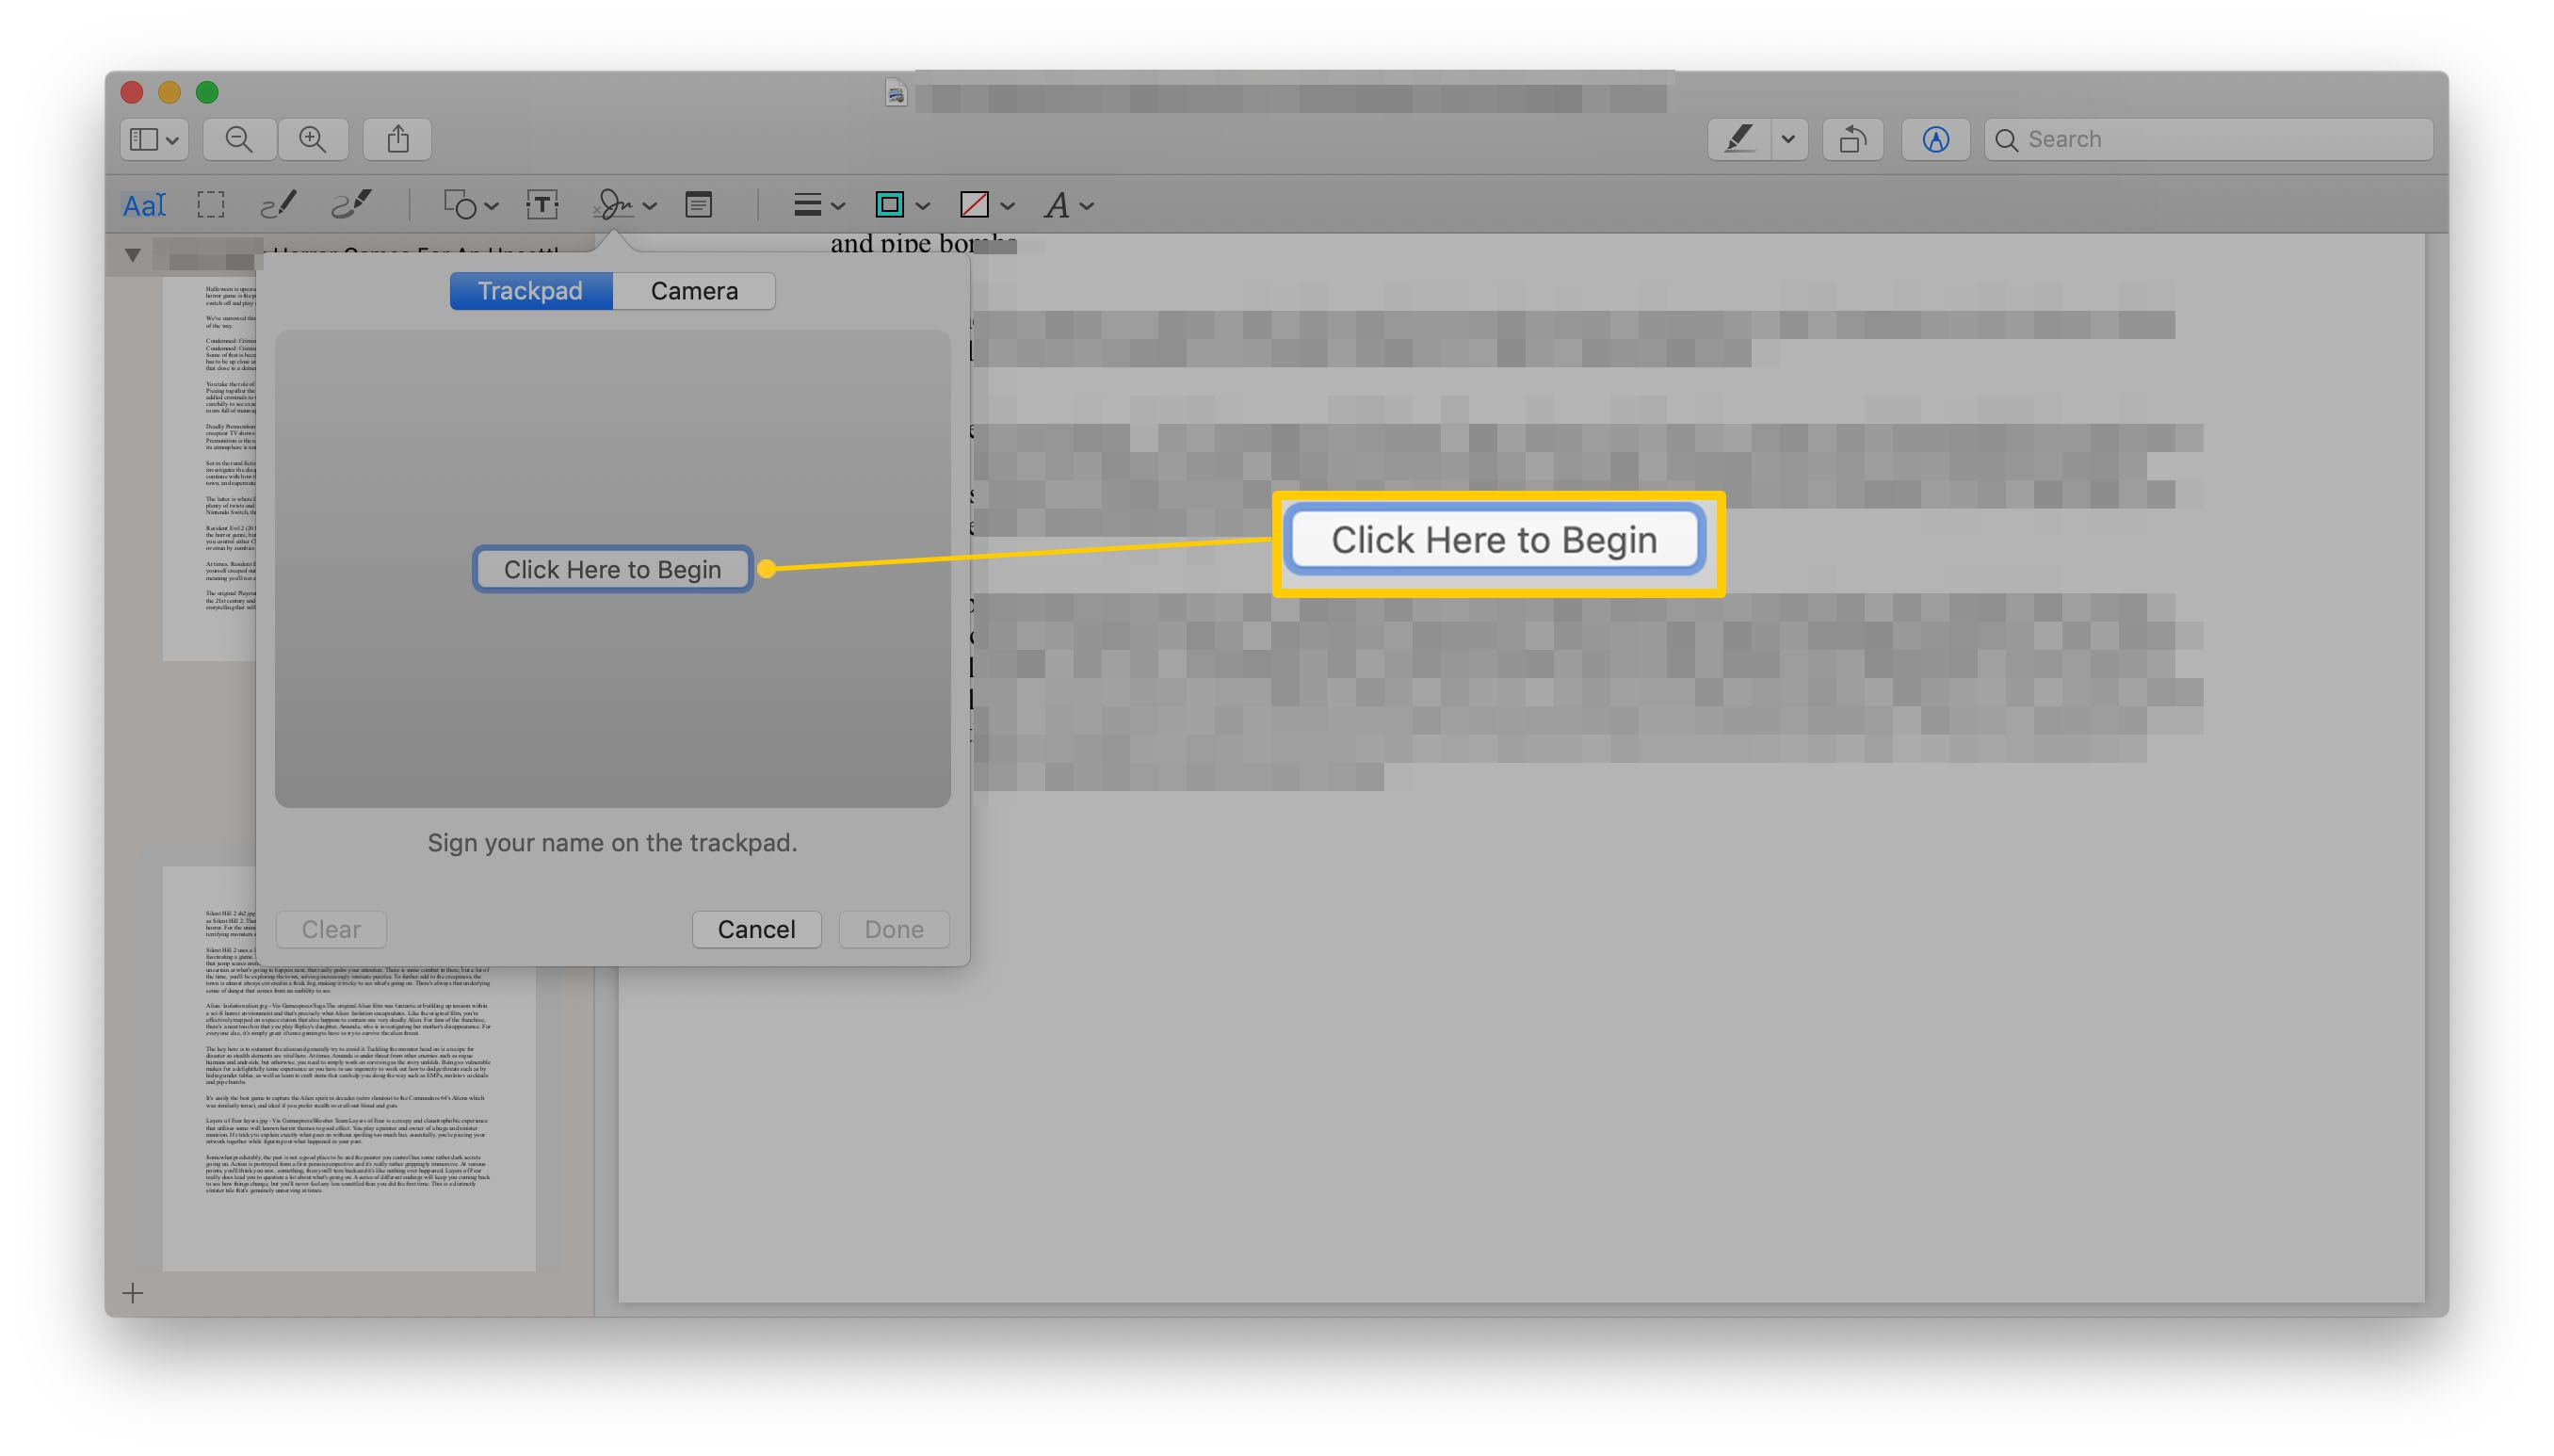 Preview app with Signature dialog showing